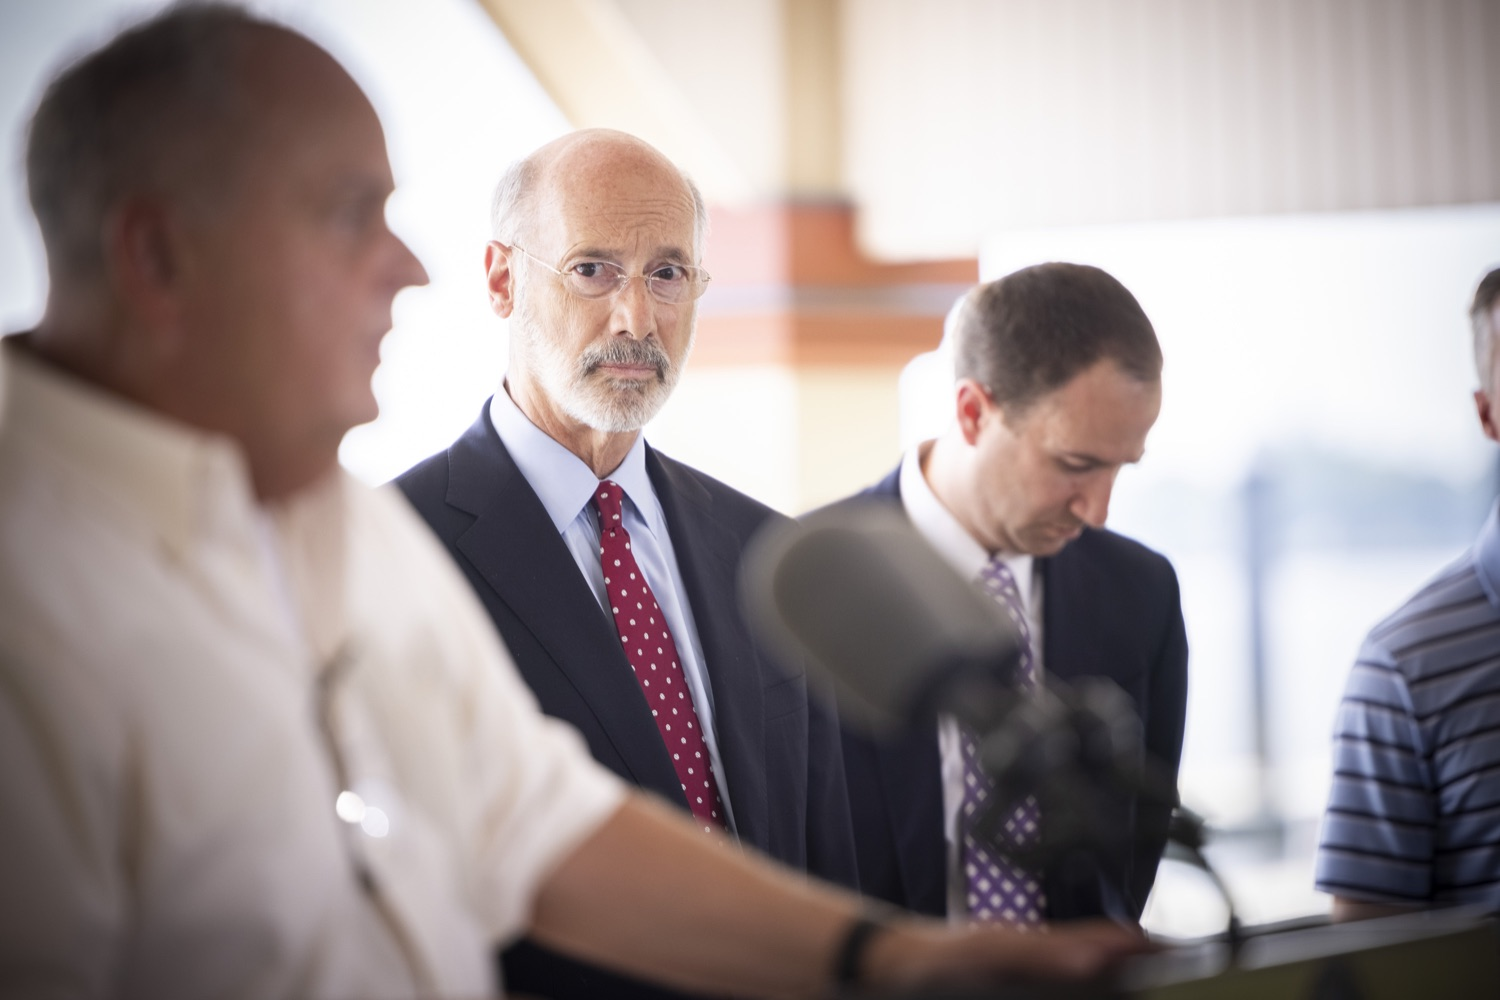 """<a href=""""https://filesource.wostreaming.net/commonwealthofpa/photo/18932_gov_chirp_dz_010.jpg"""" target=""""_blank"""">⇣Download Photo<br></a>Pennsylvania Governor Tom Wolf listens as Pennsylvania State Representative John Galloway speaks.  Governor Tom Wolf today joined the Pennsylvania Department of Community and Economic Development, Bucks County Commissioners, Bristol Borough Mayor Joseph Saxton, local lawmakers, Bucks County Economic Development Corporation, Visit Bucks County, the Bucks County Redevelopment Authority, and the owners of Itri Wood Fired to highlight the $7 million in grant funding provided to Bucks County restaurants through the COVID-19 Hospitality Industry Recovery Program(CHIRP).  JULY 16, 2021 - BRISTOL, PA"""